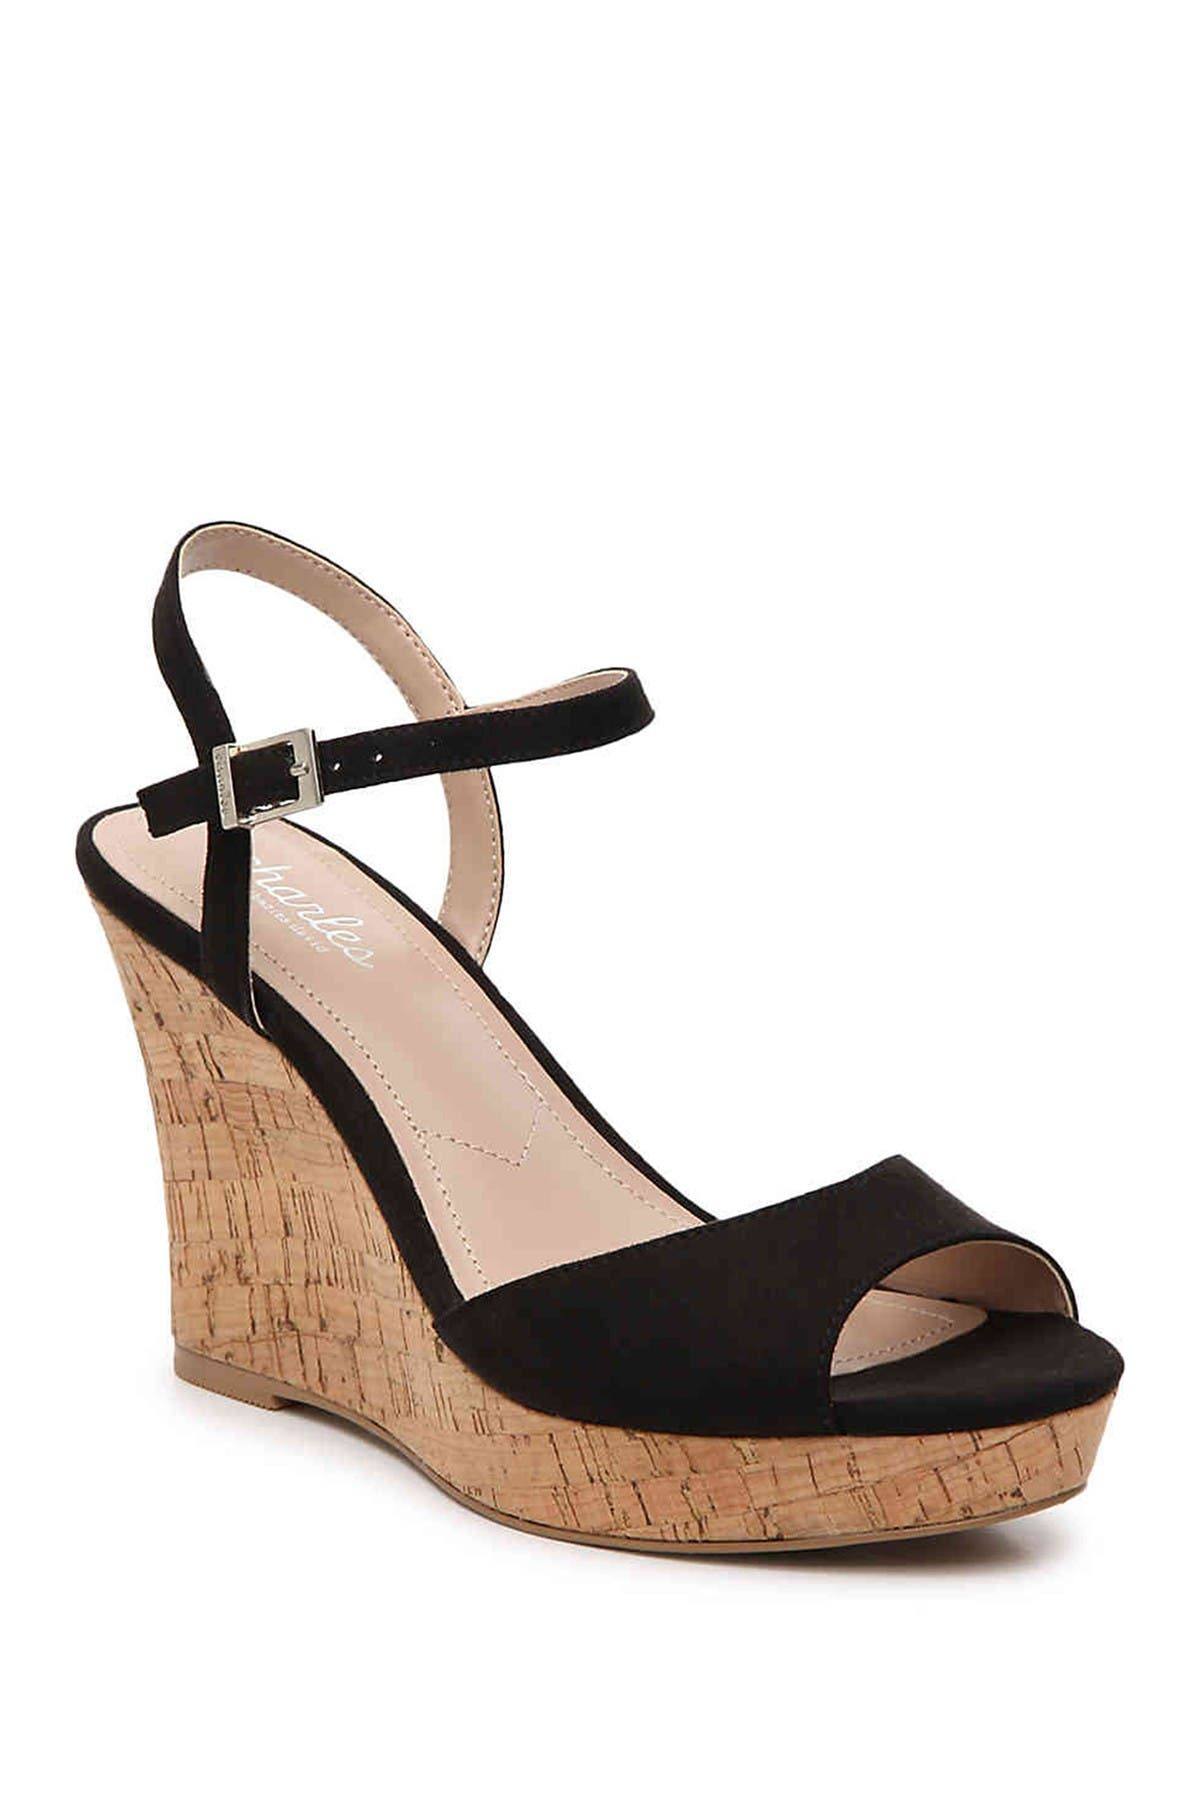 Image of Charles By Charles David Lambert Cork Wedge Sandal